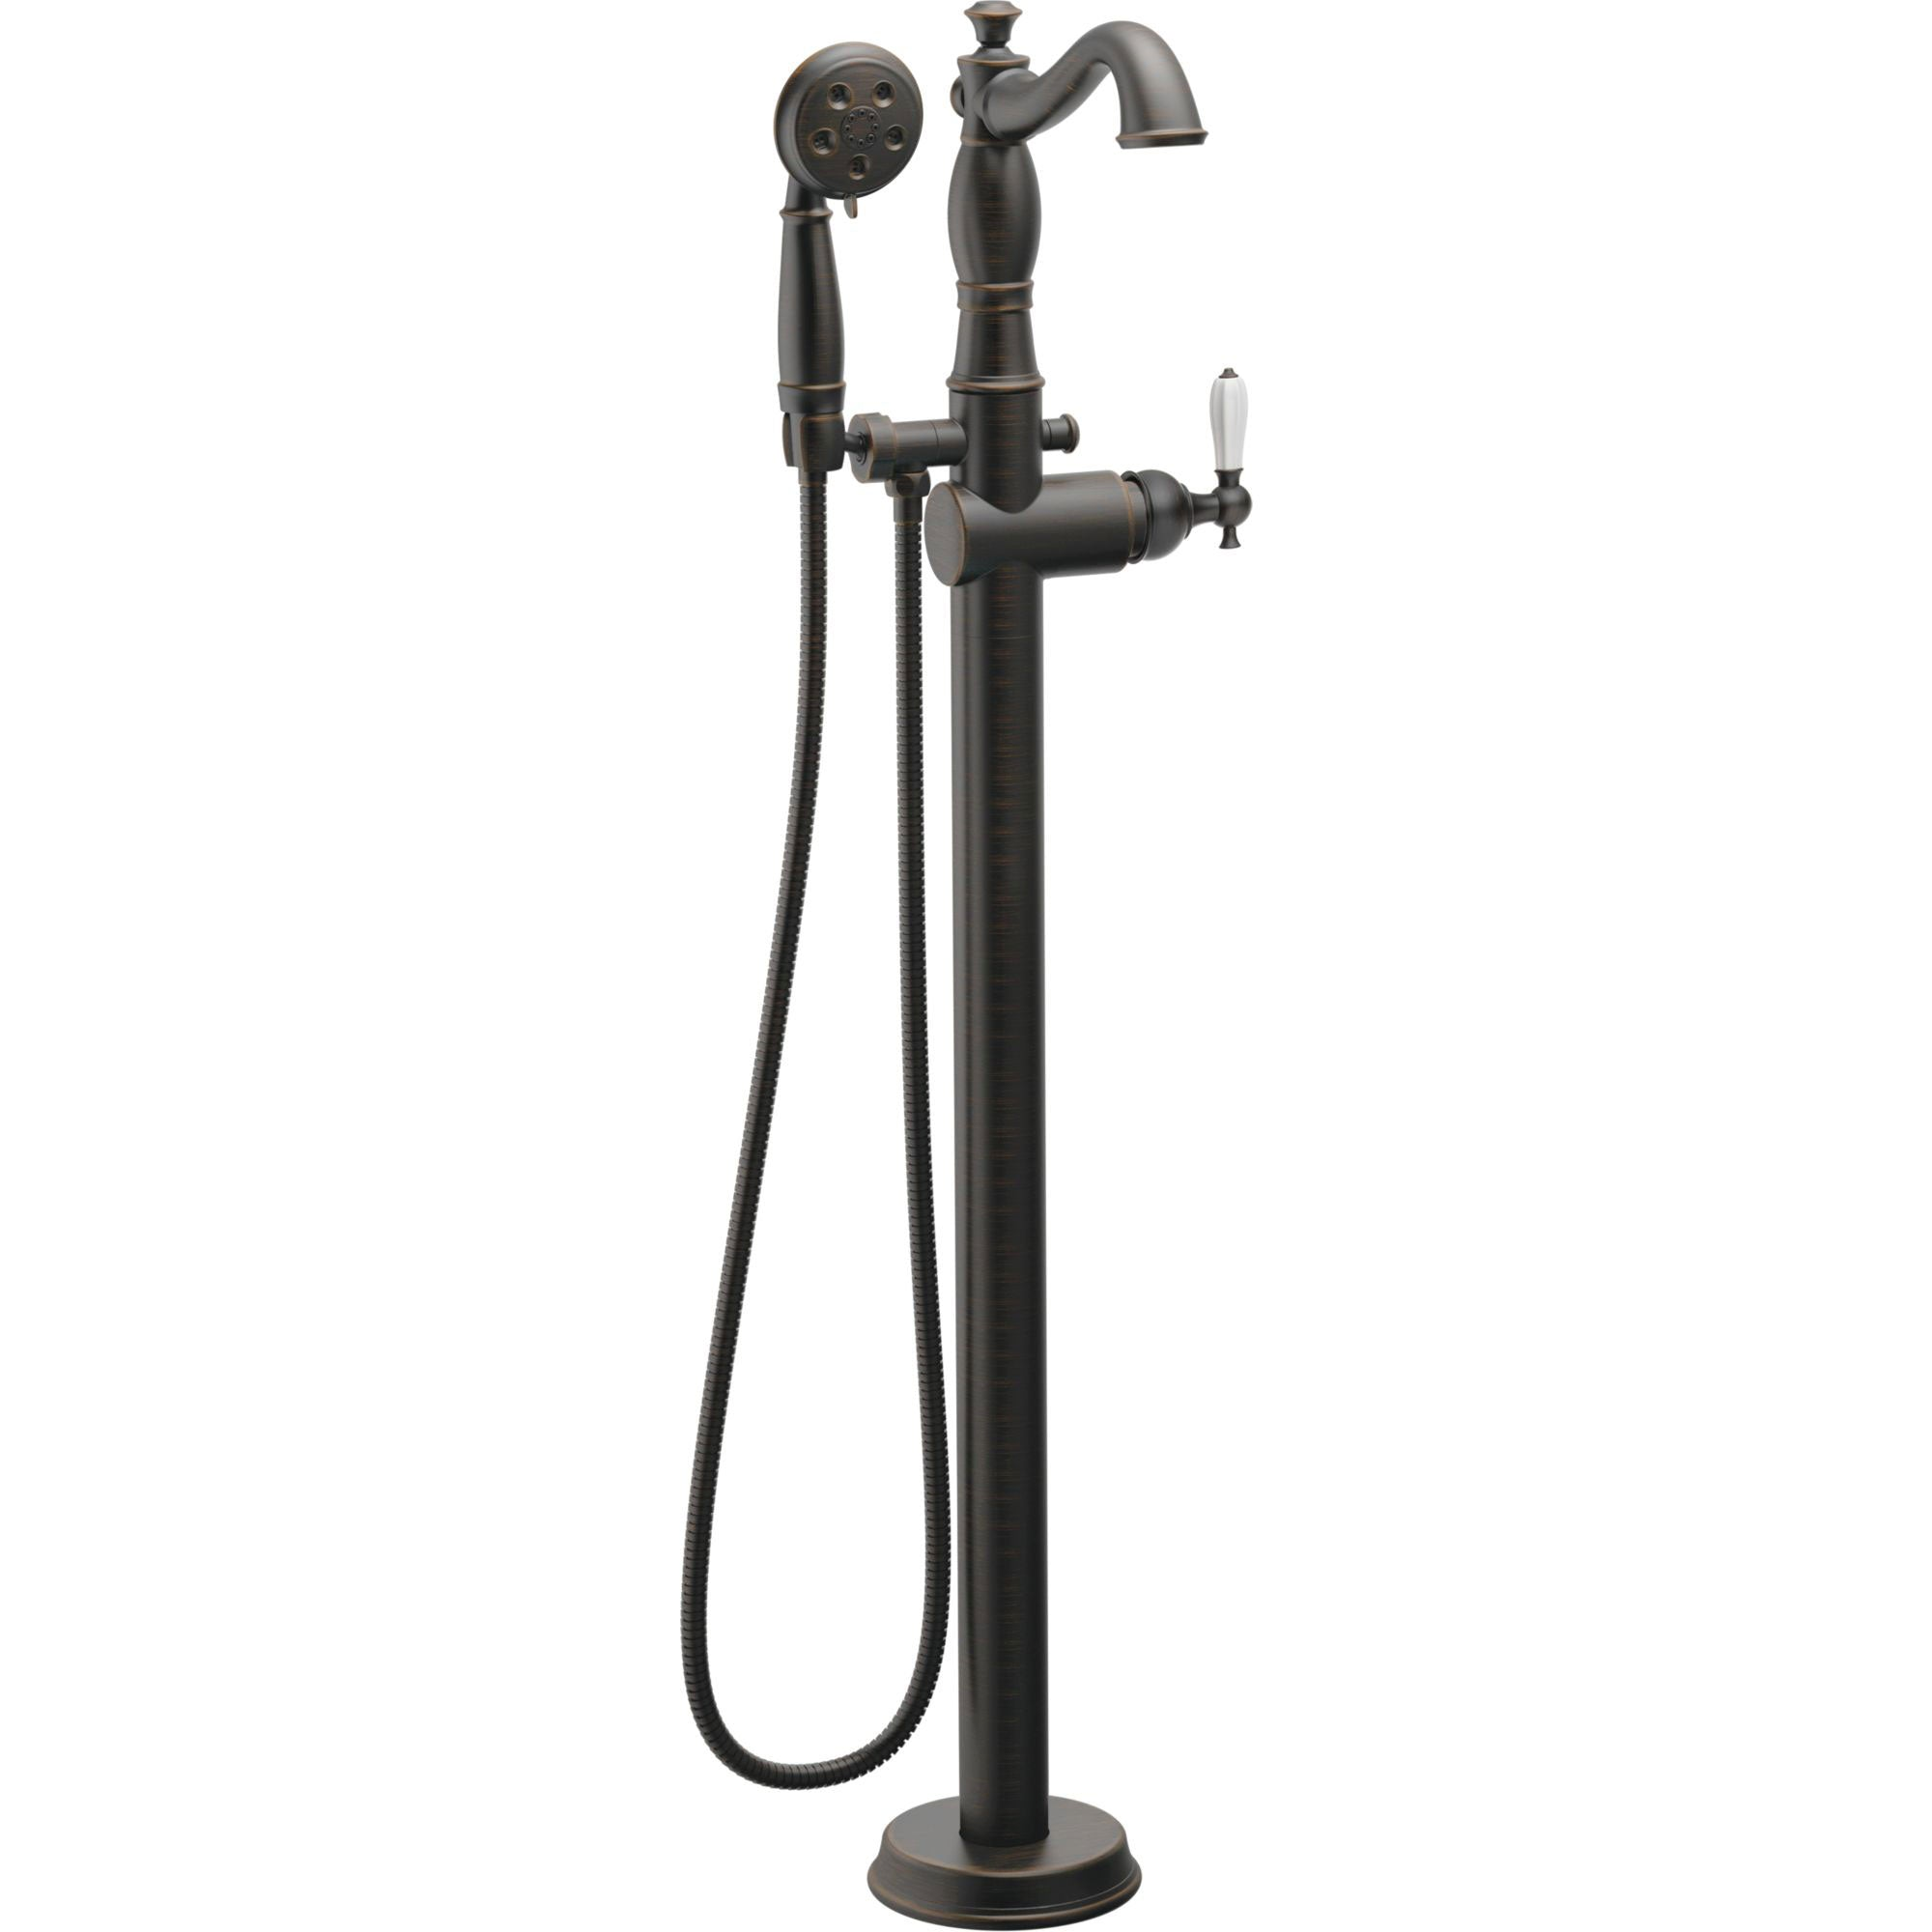 Delta Traditional Venetian Bronze Floor Mount Tub Filler Faucet with Hand Shower Spray INCLUDES Valve and Porcelain Lever Handle D1057V